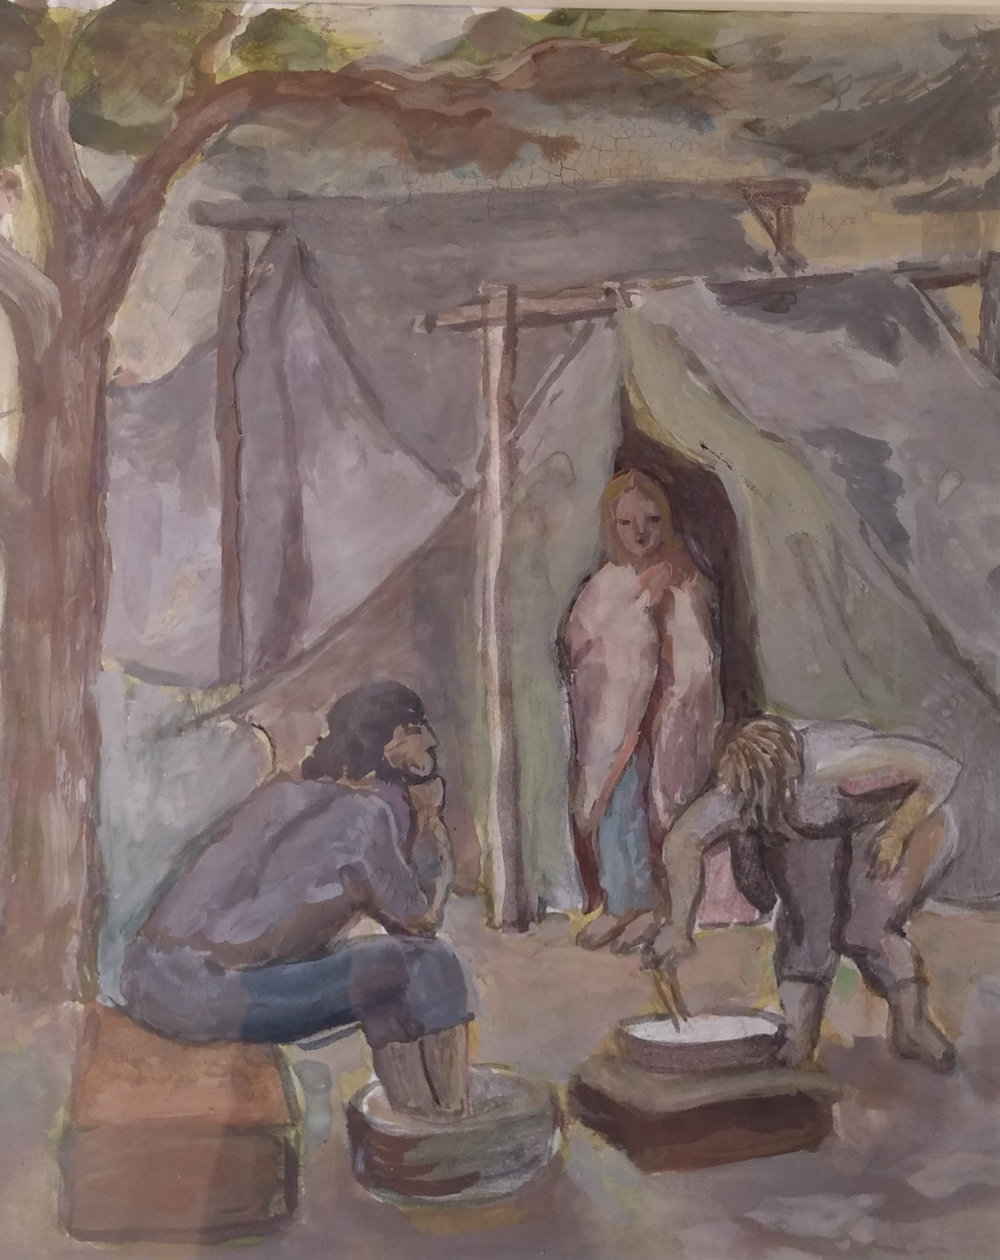 Migrant Workers in Tent, gouache, 6x12 Pathways Private Collection